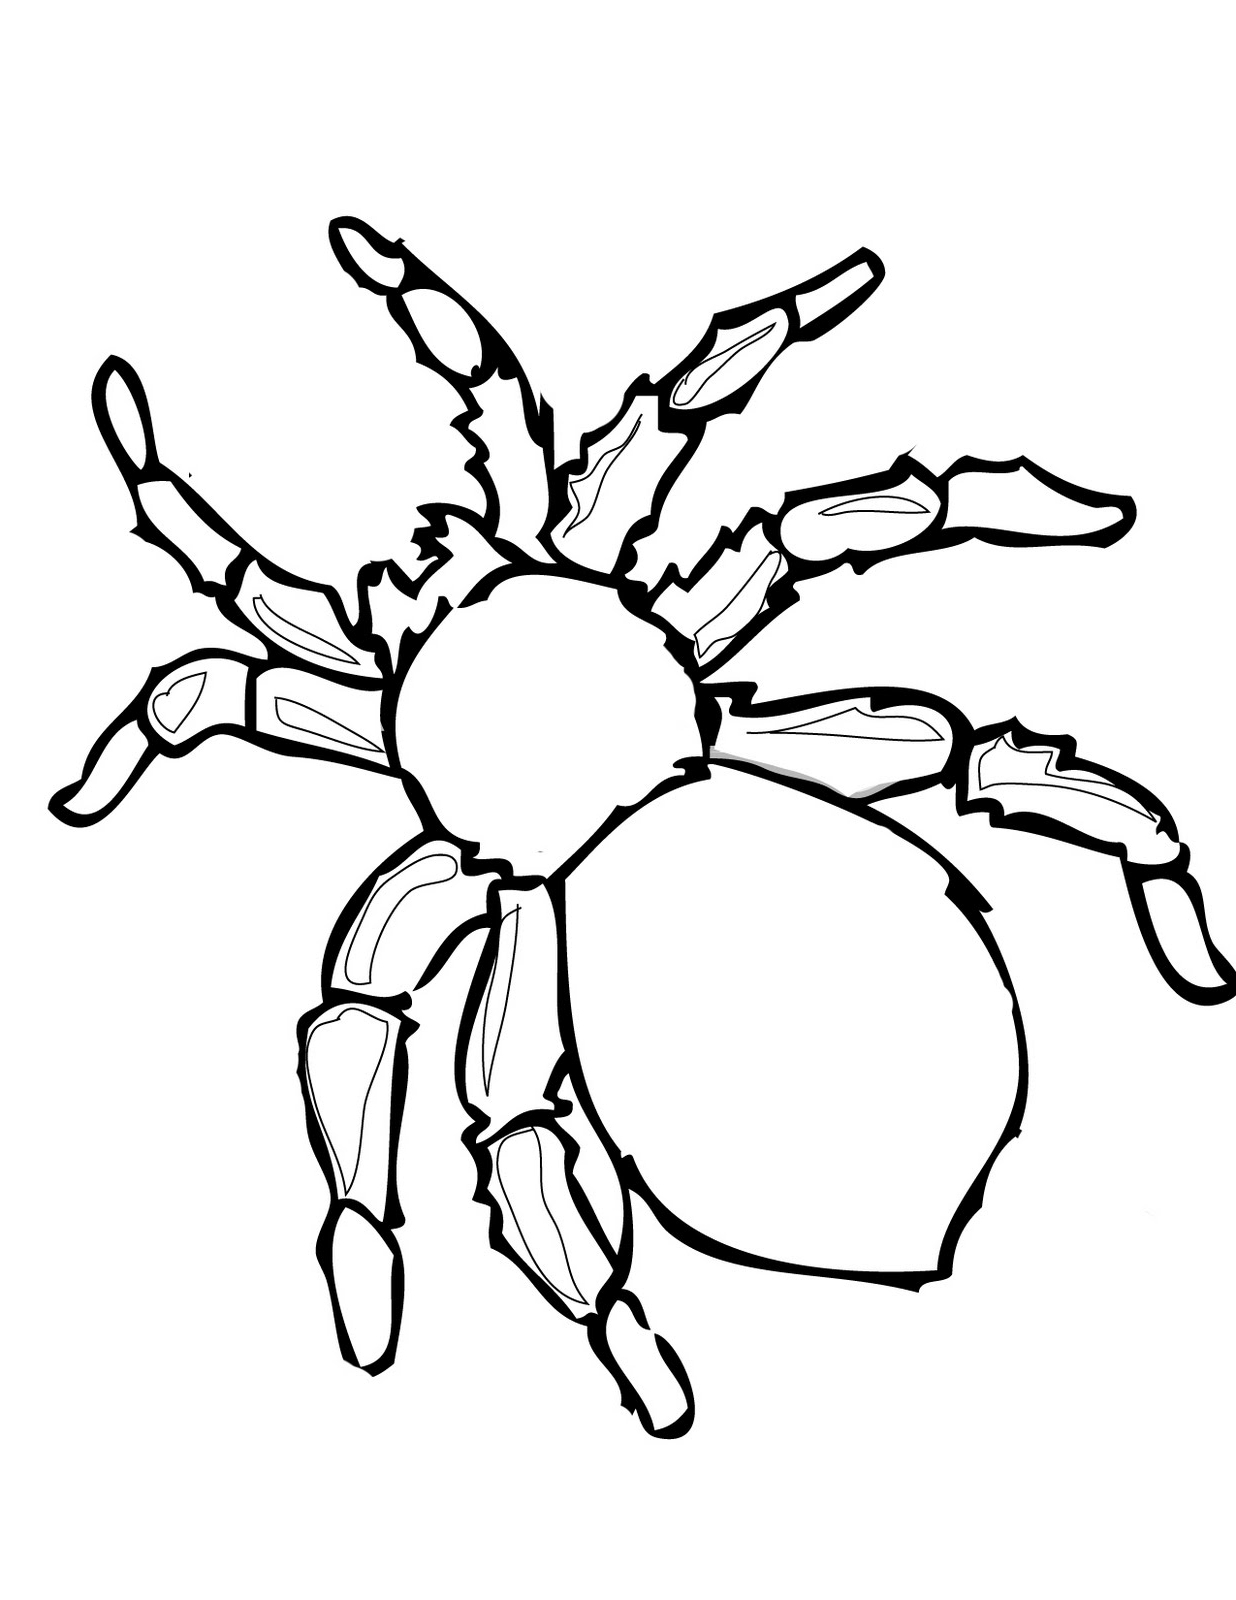 Halloween Spider Coloring Pages At Getdrawings Com Free For